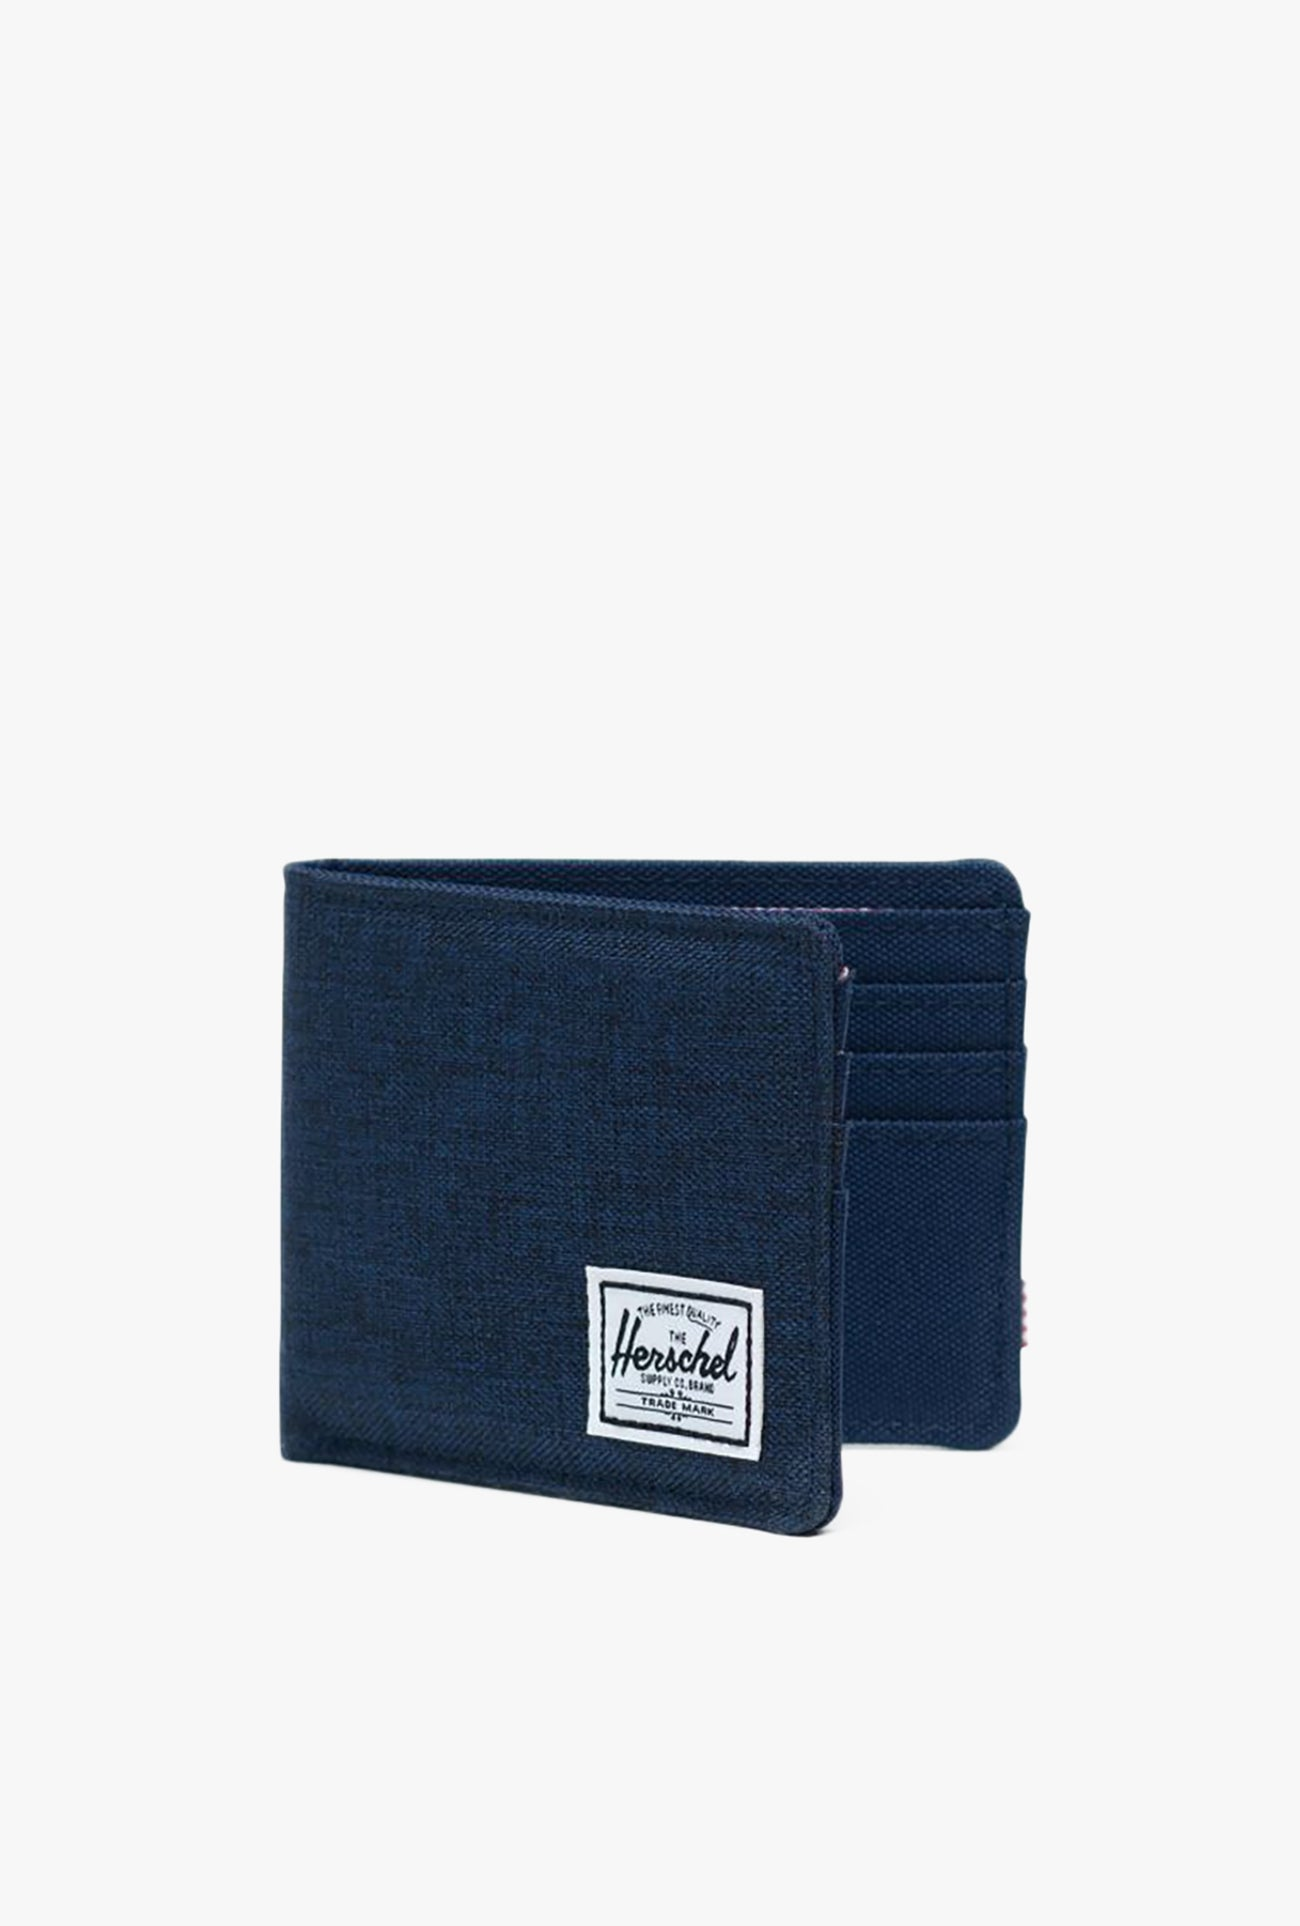 Roy+ Wallet - Medieval Blue